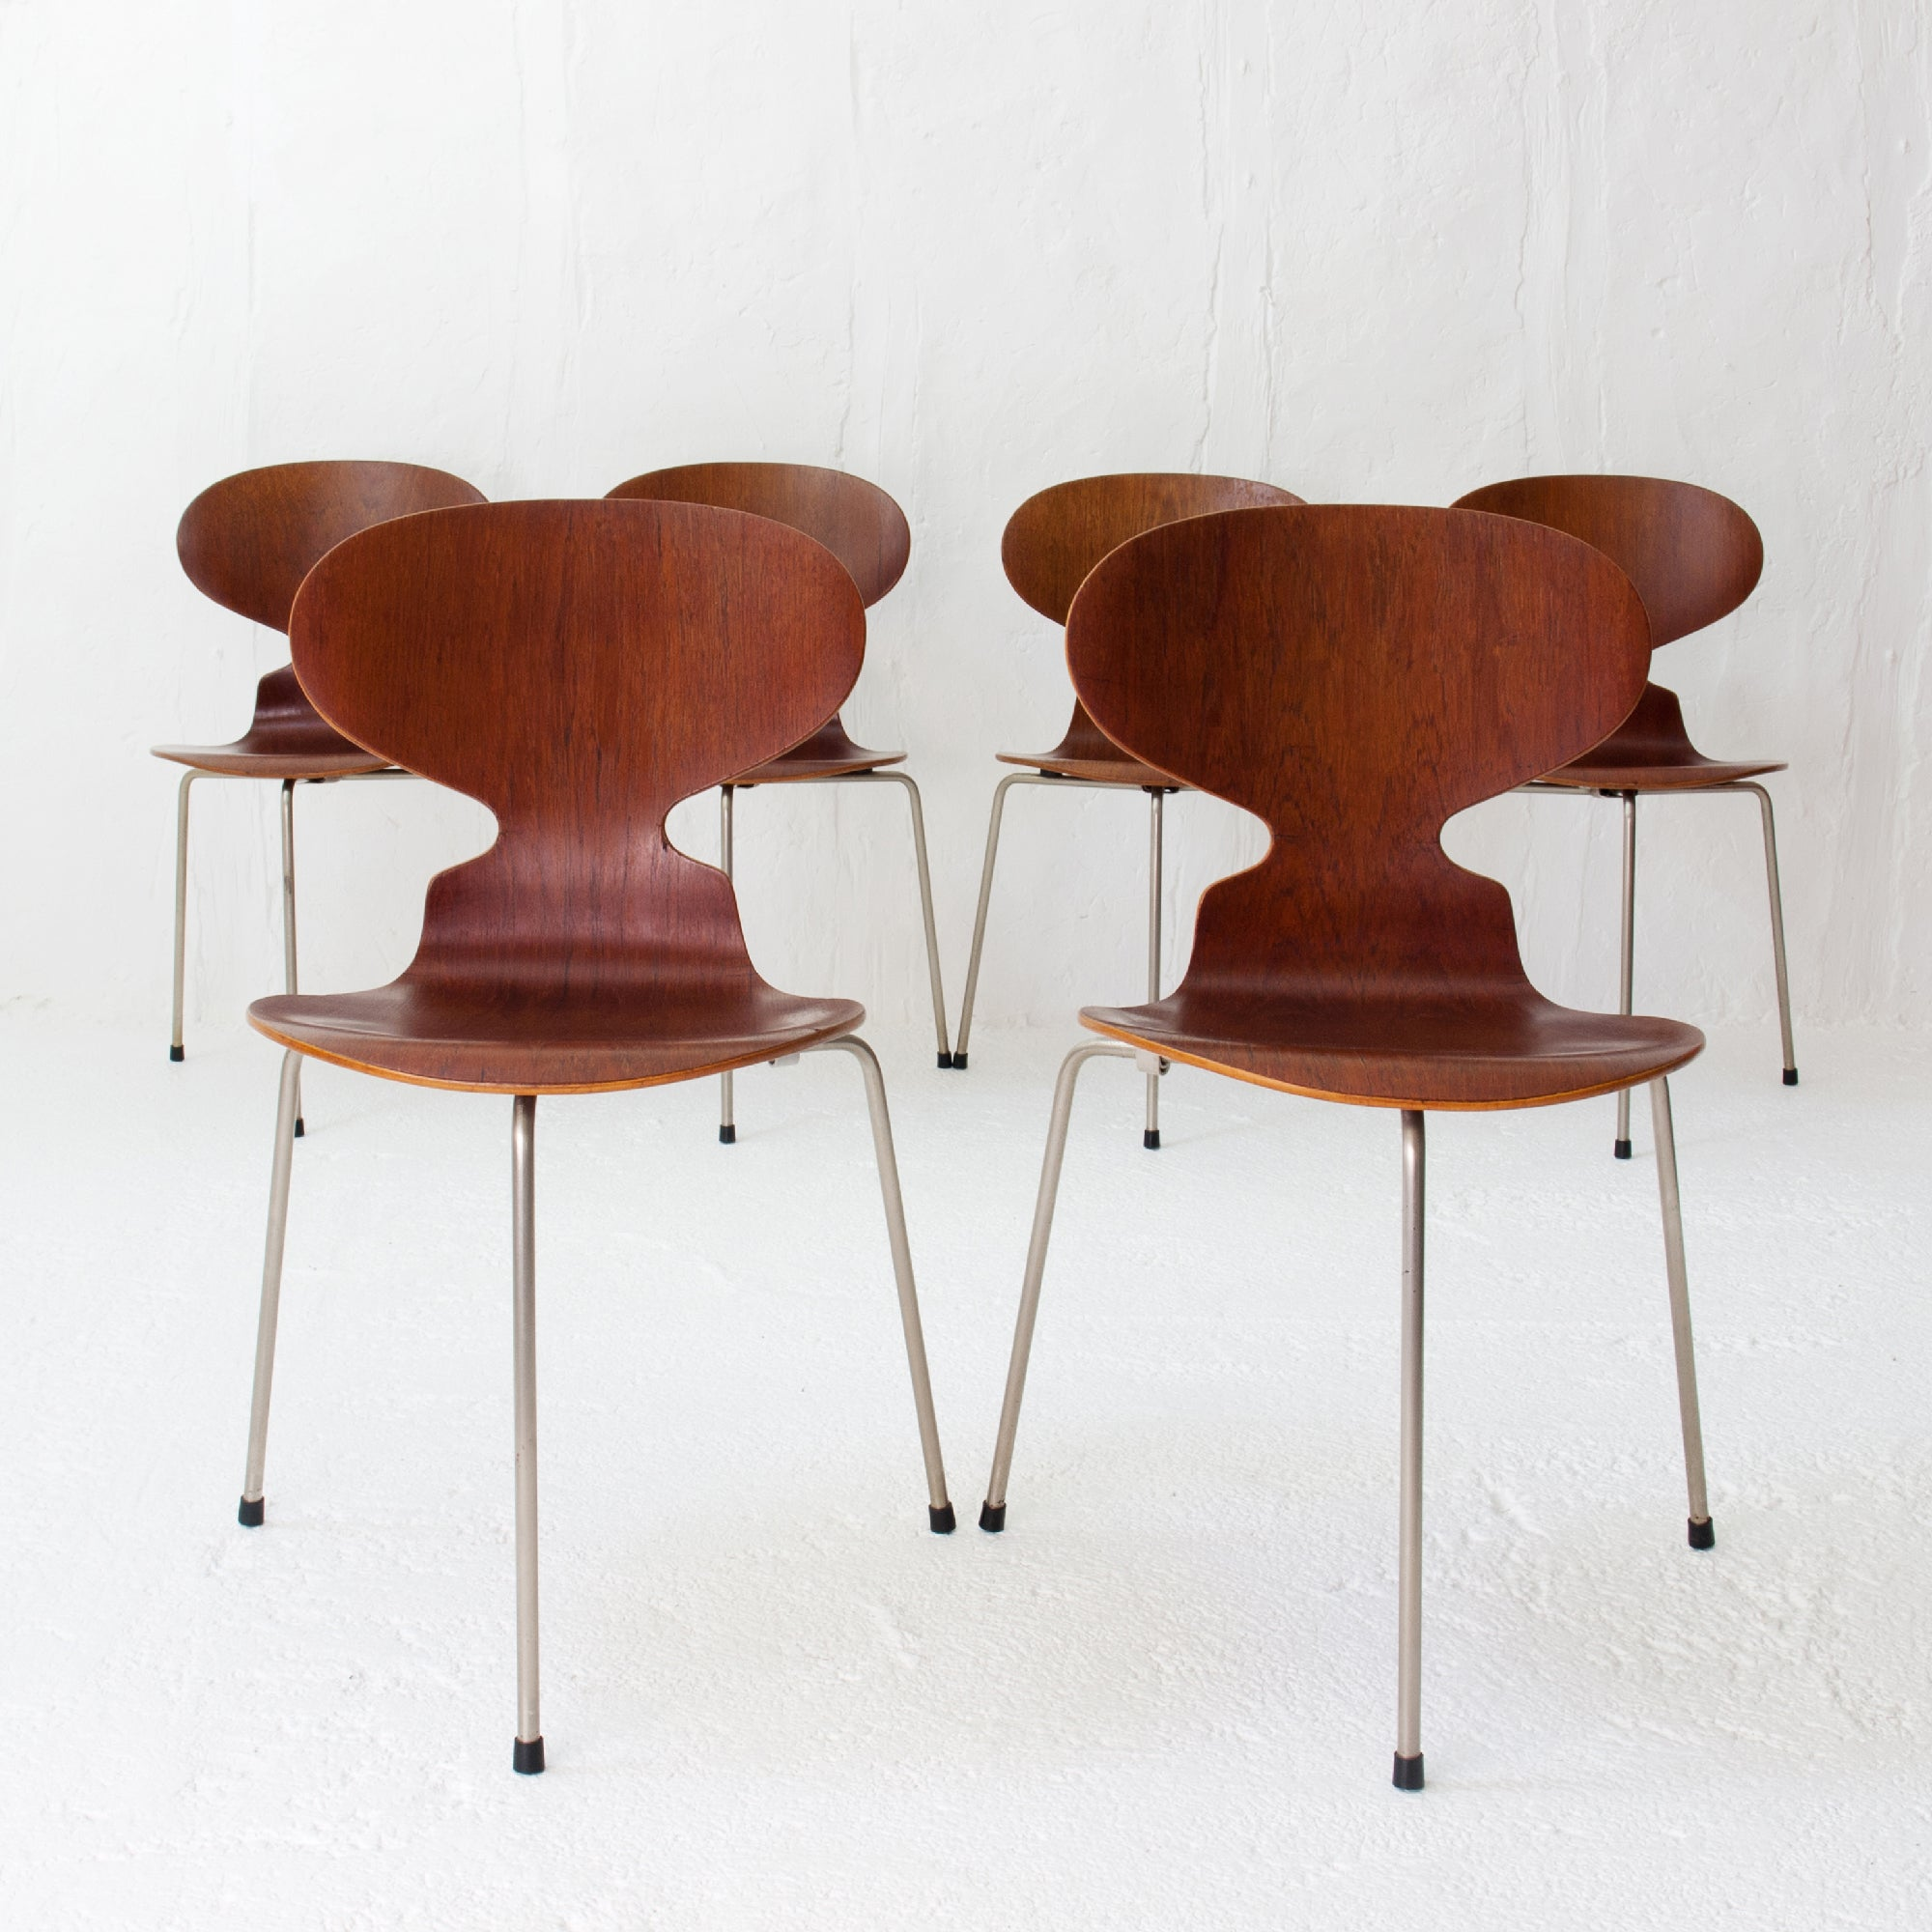 Chaise Fourmi Jacobsen Teak Ant Chairs 3100 Arne Jacobsen For Fritz Hansen Early 1960s